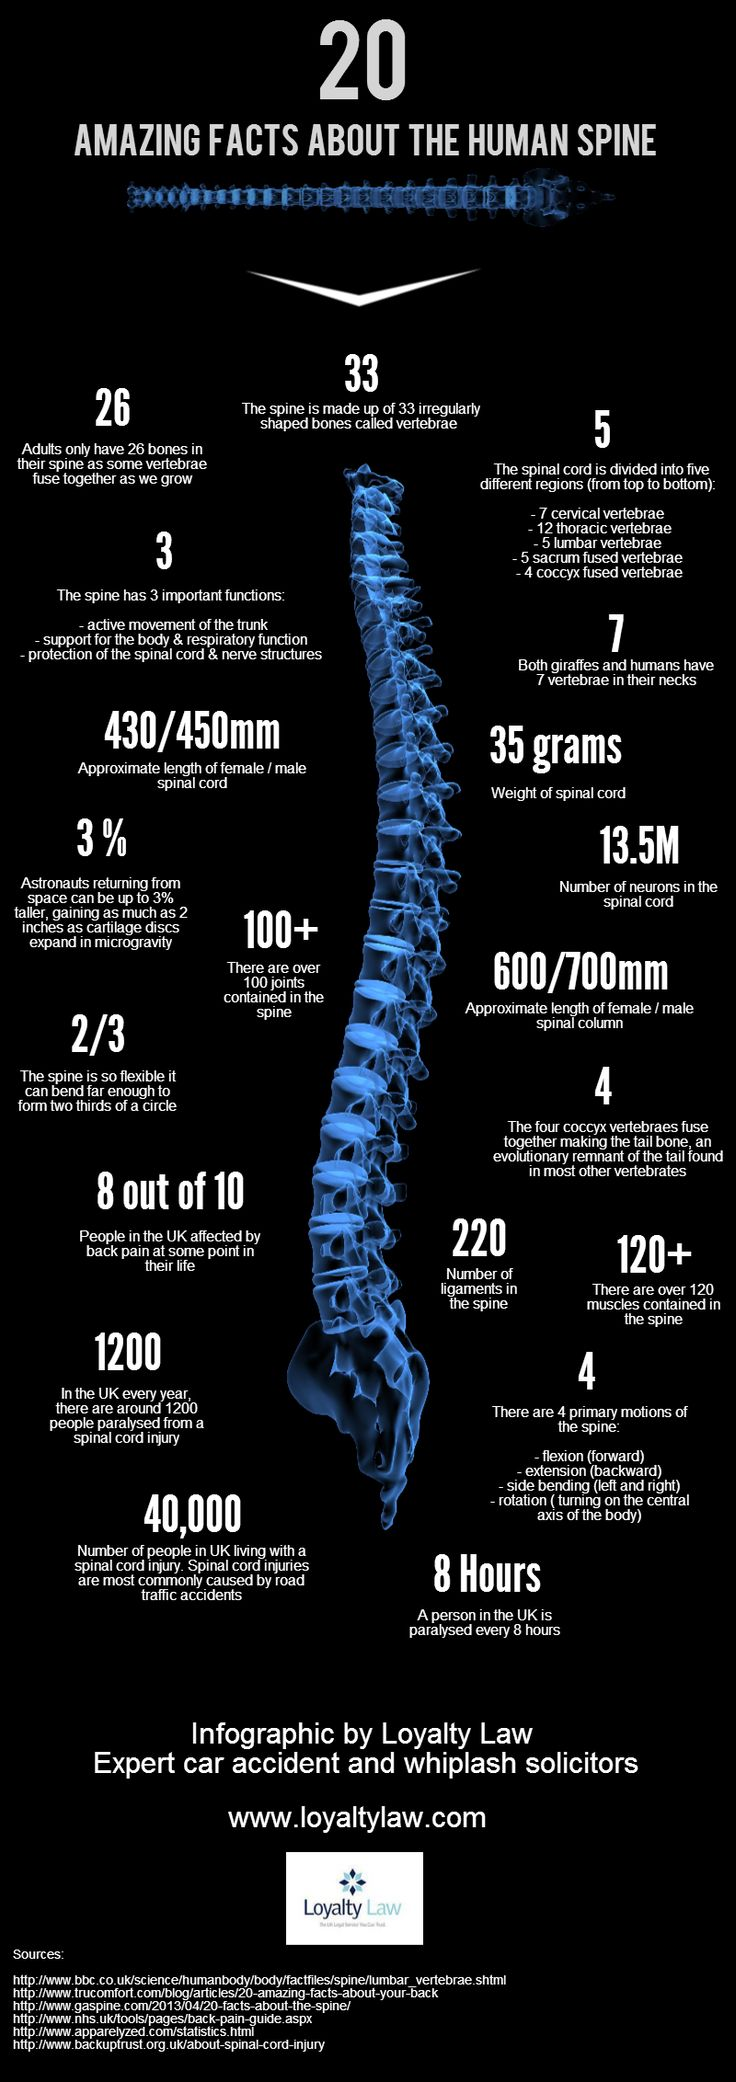 The human spine is an incredible part of the human body. This infographic takes a closer look at this the facts and figures behind the spine.